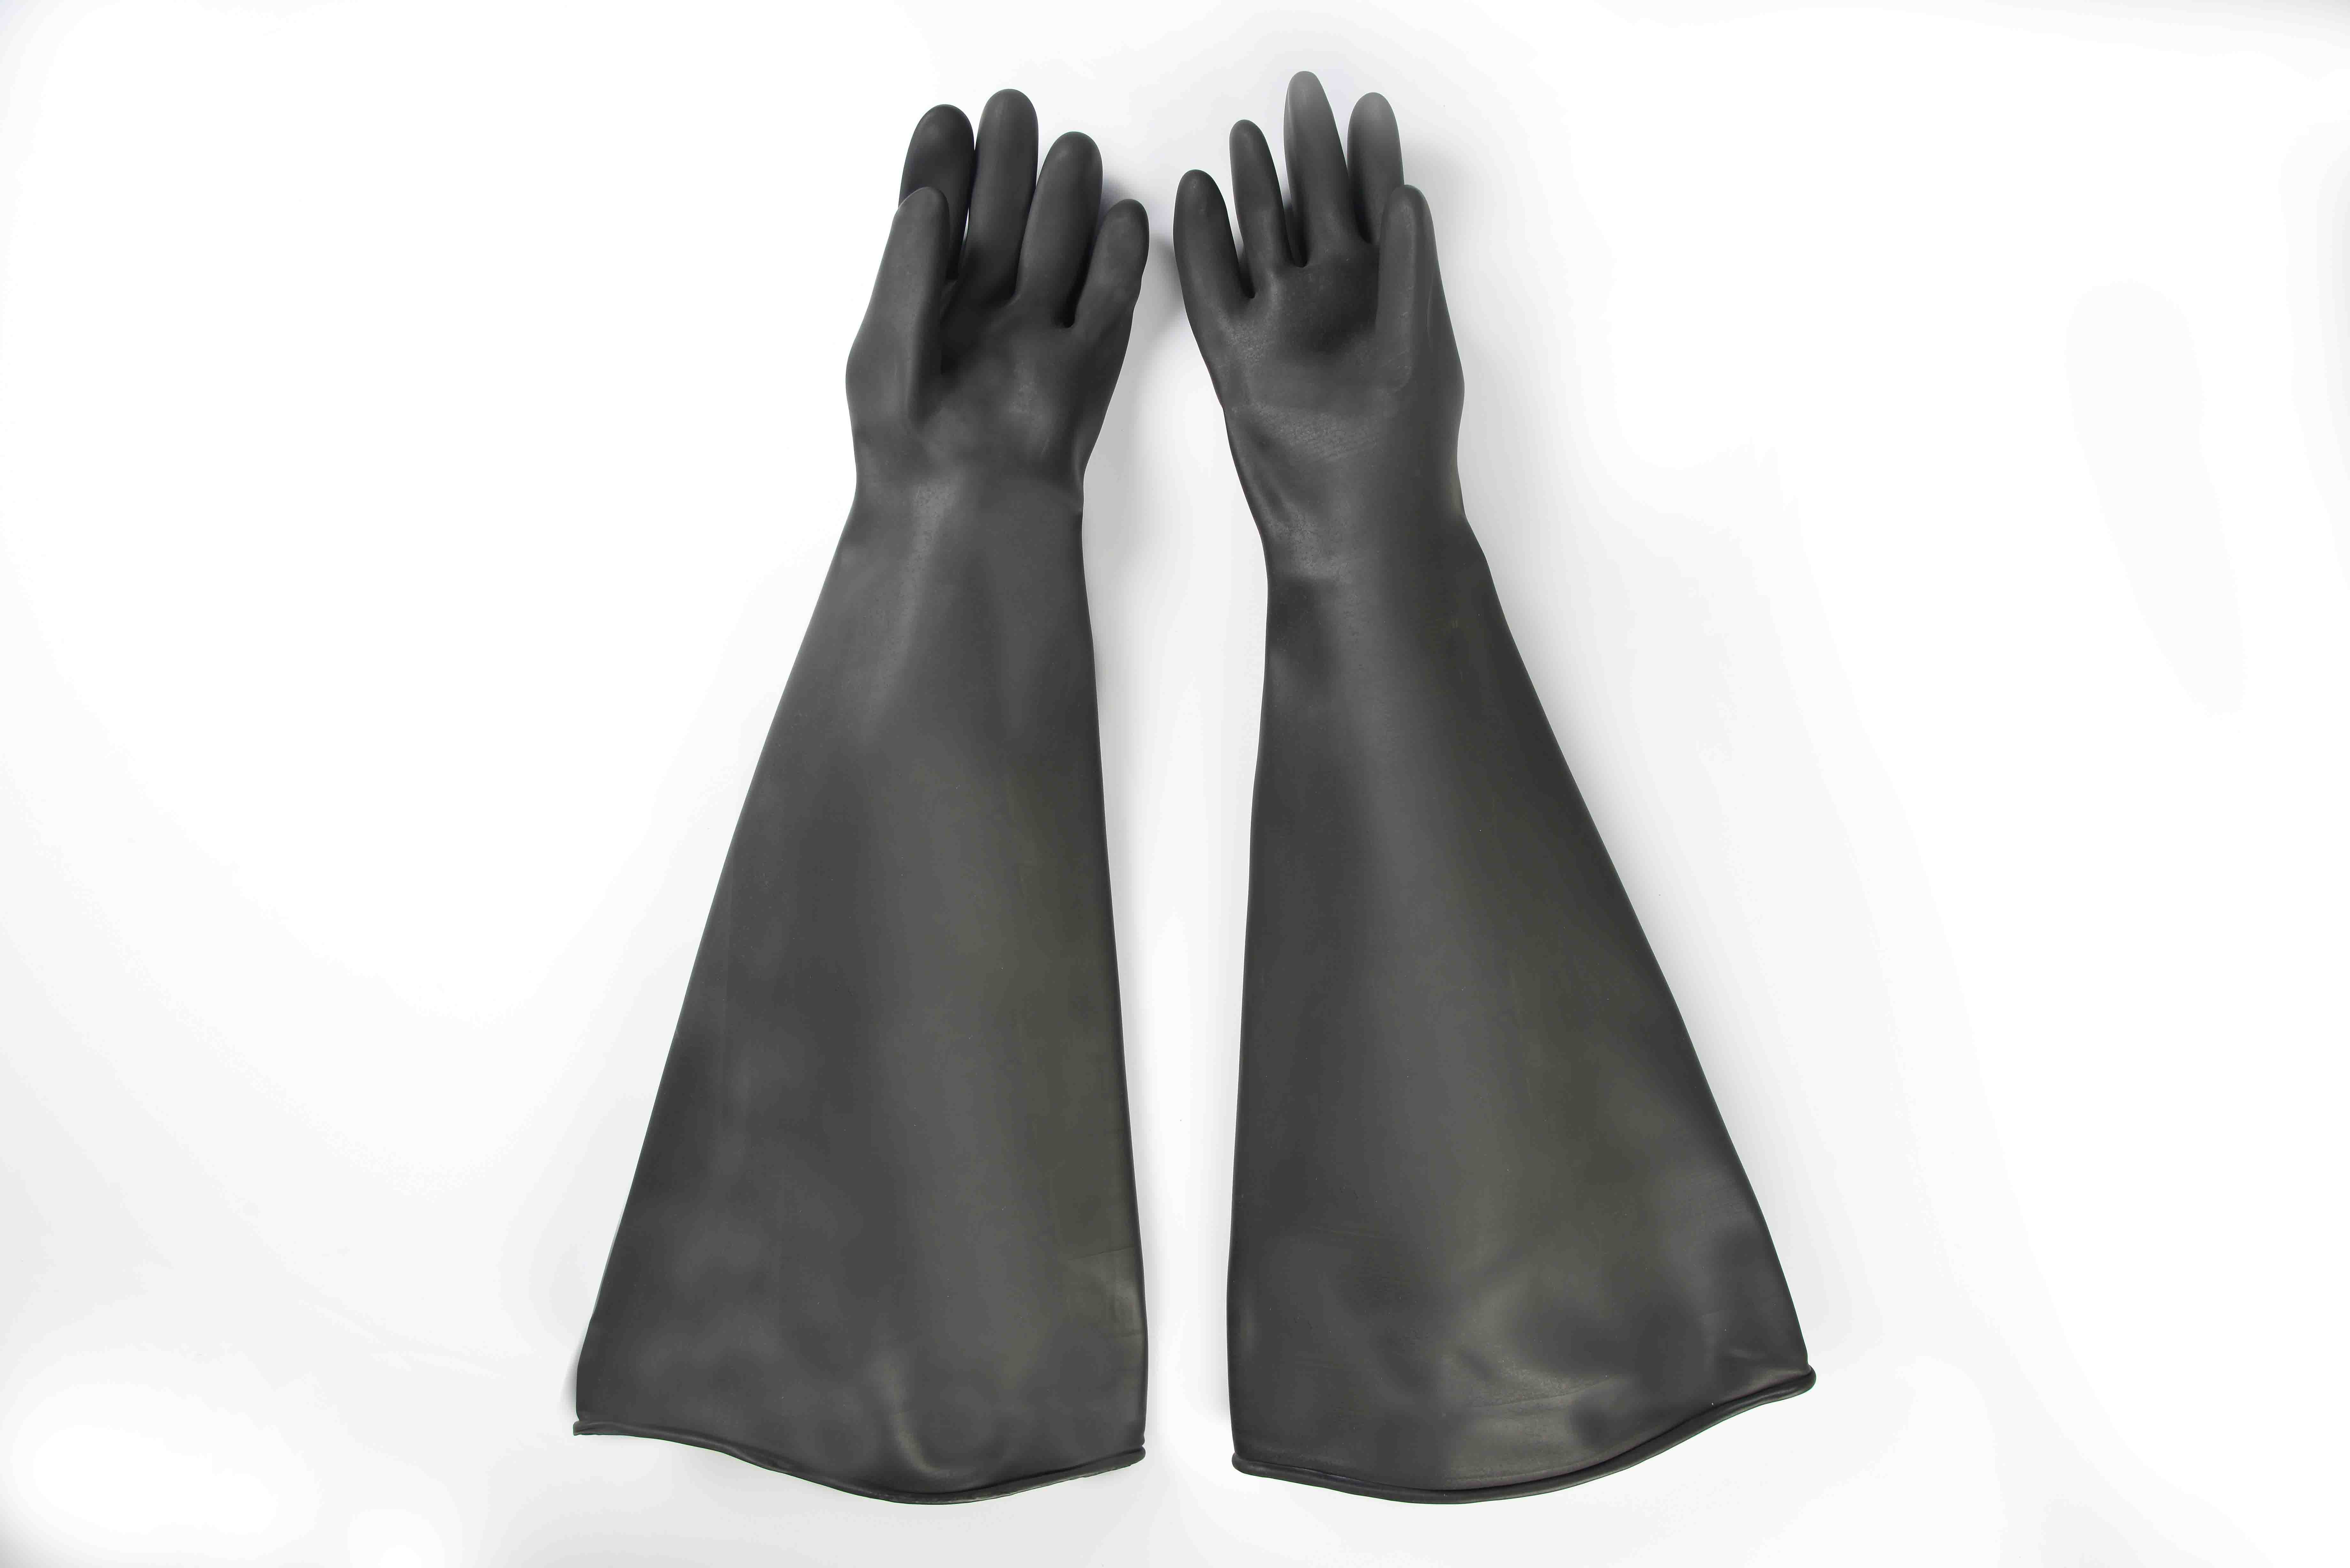 12 Years Factory wholesale 26″ Industrial rubber glove-smooth finish for Tajikistan